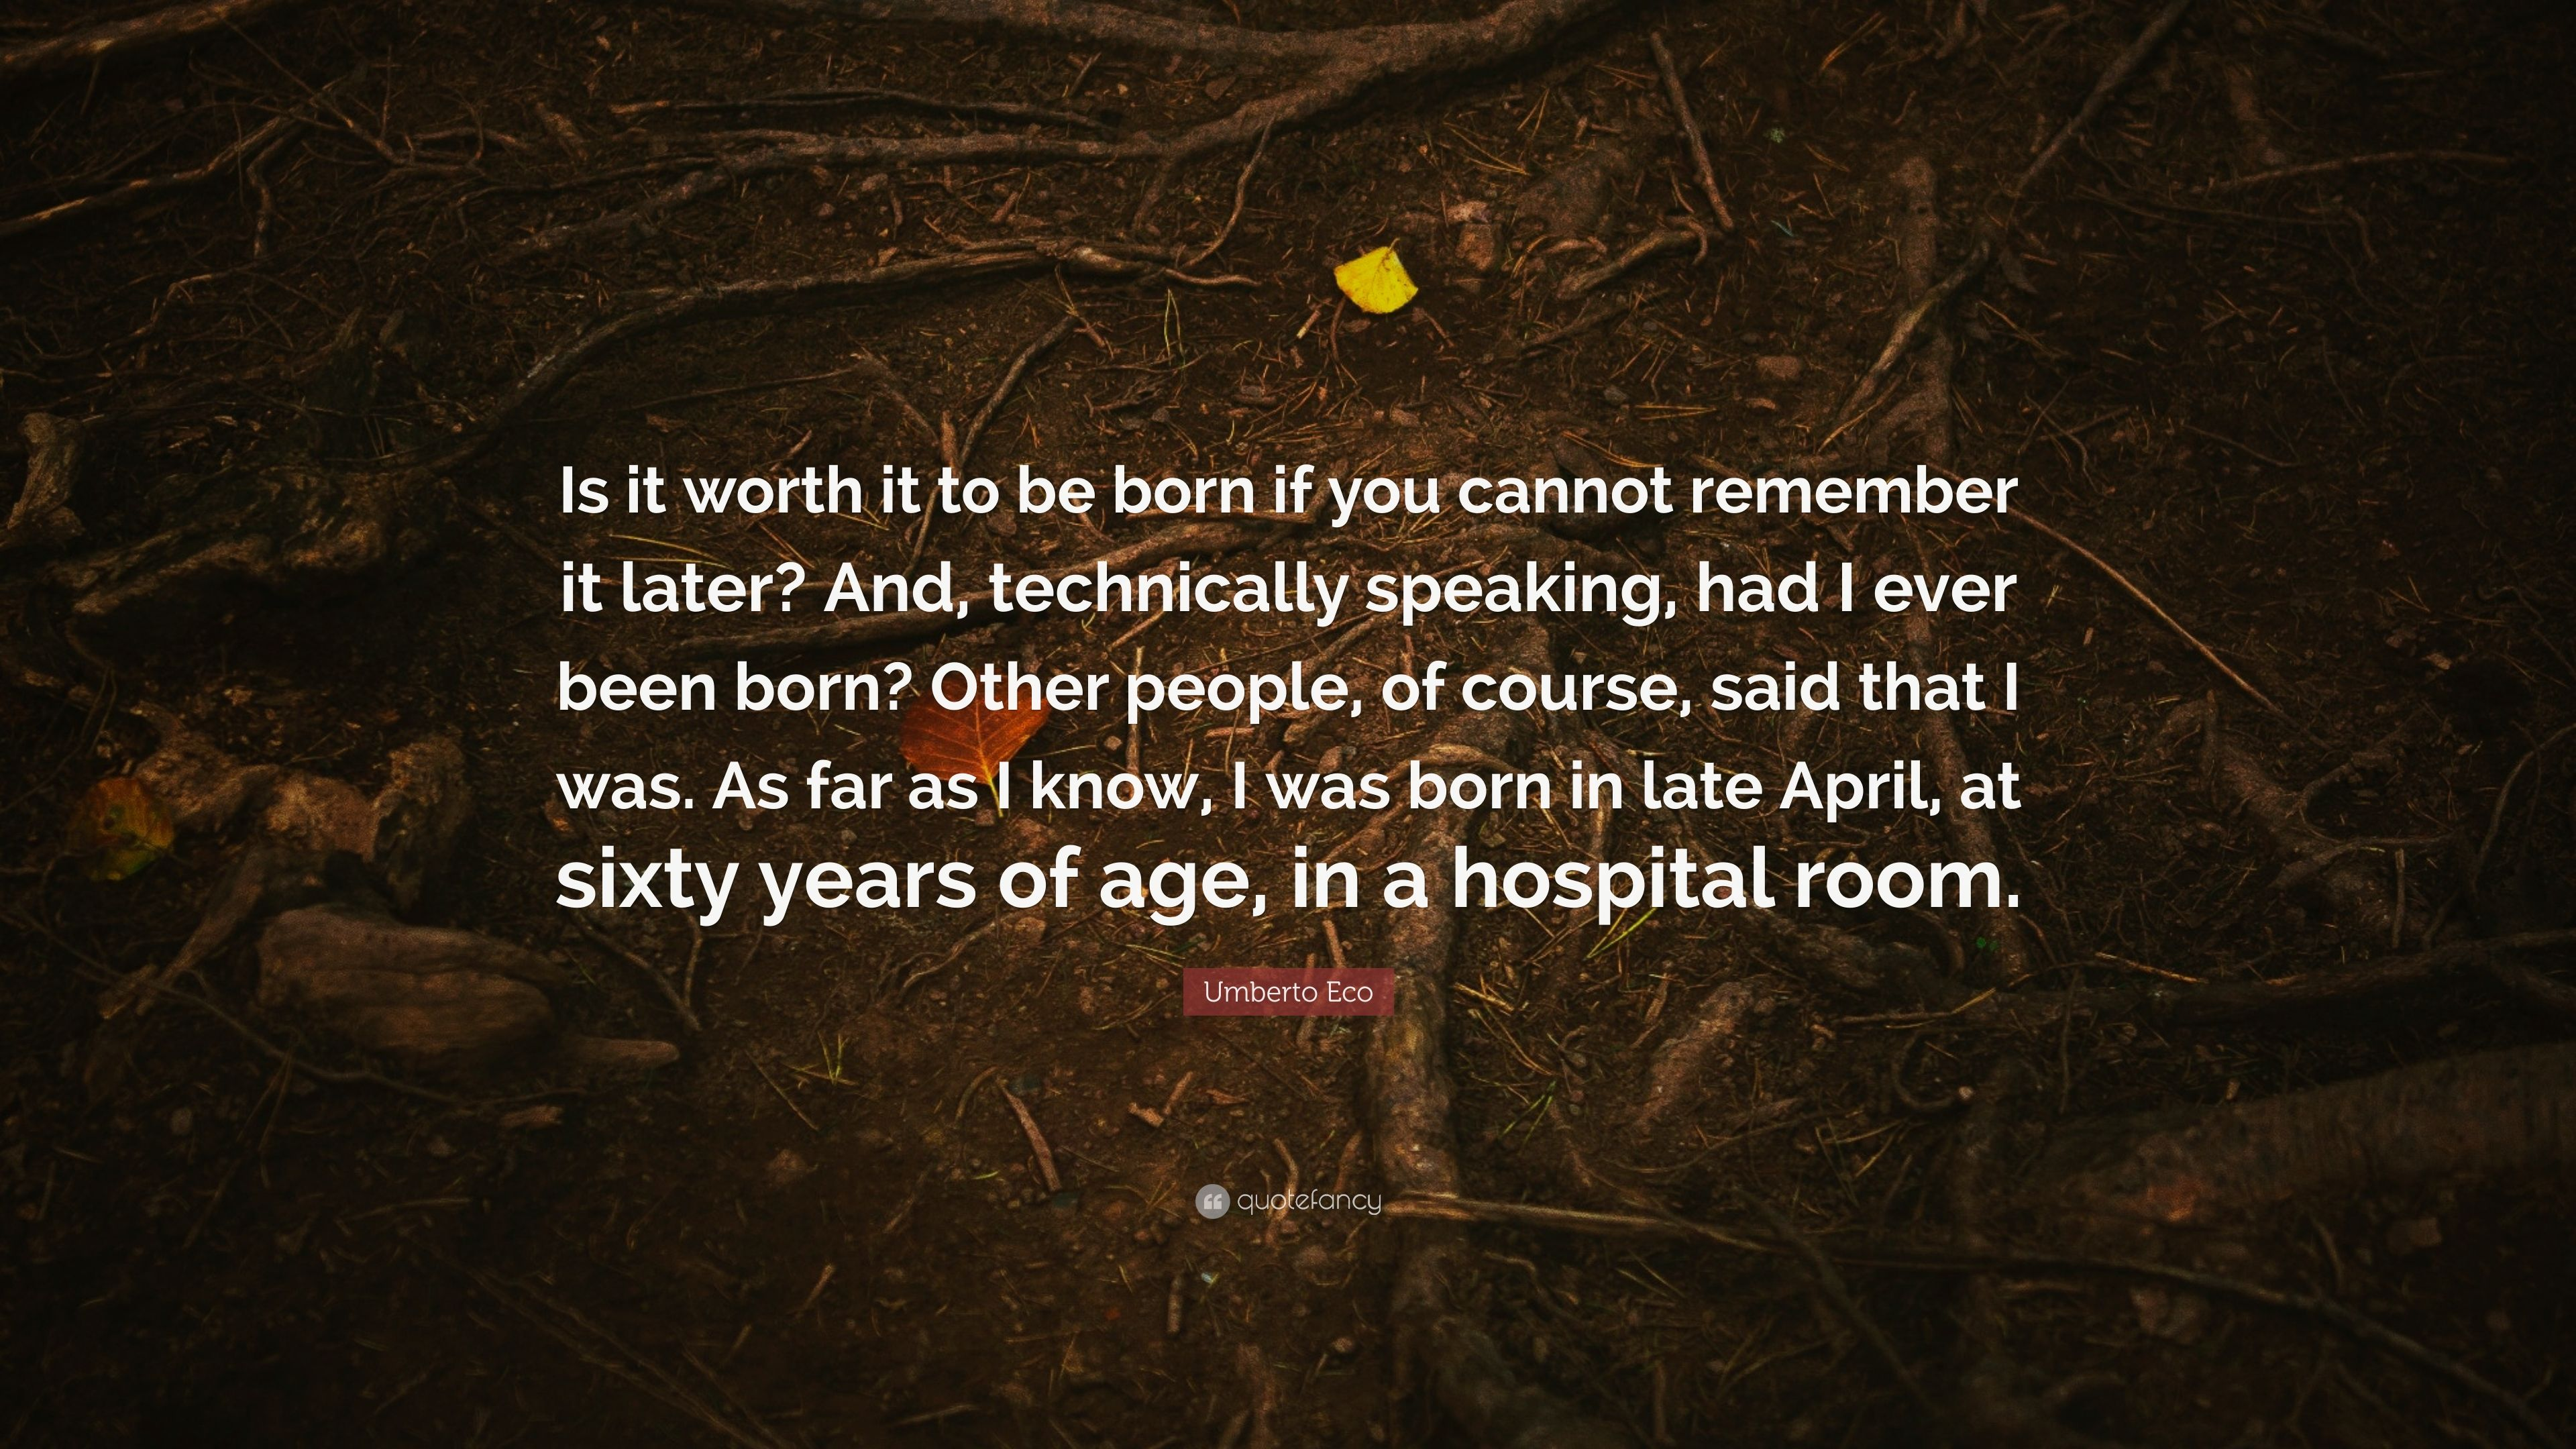 Umberto Eco Quote: U201cIs It Worth It To Be Born If You Cannot Remember